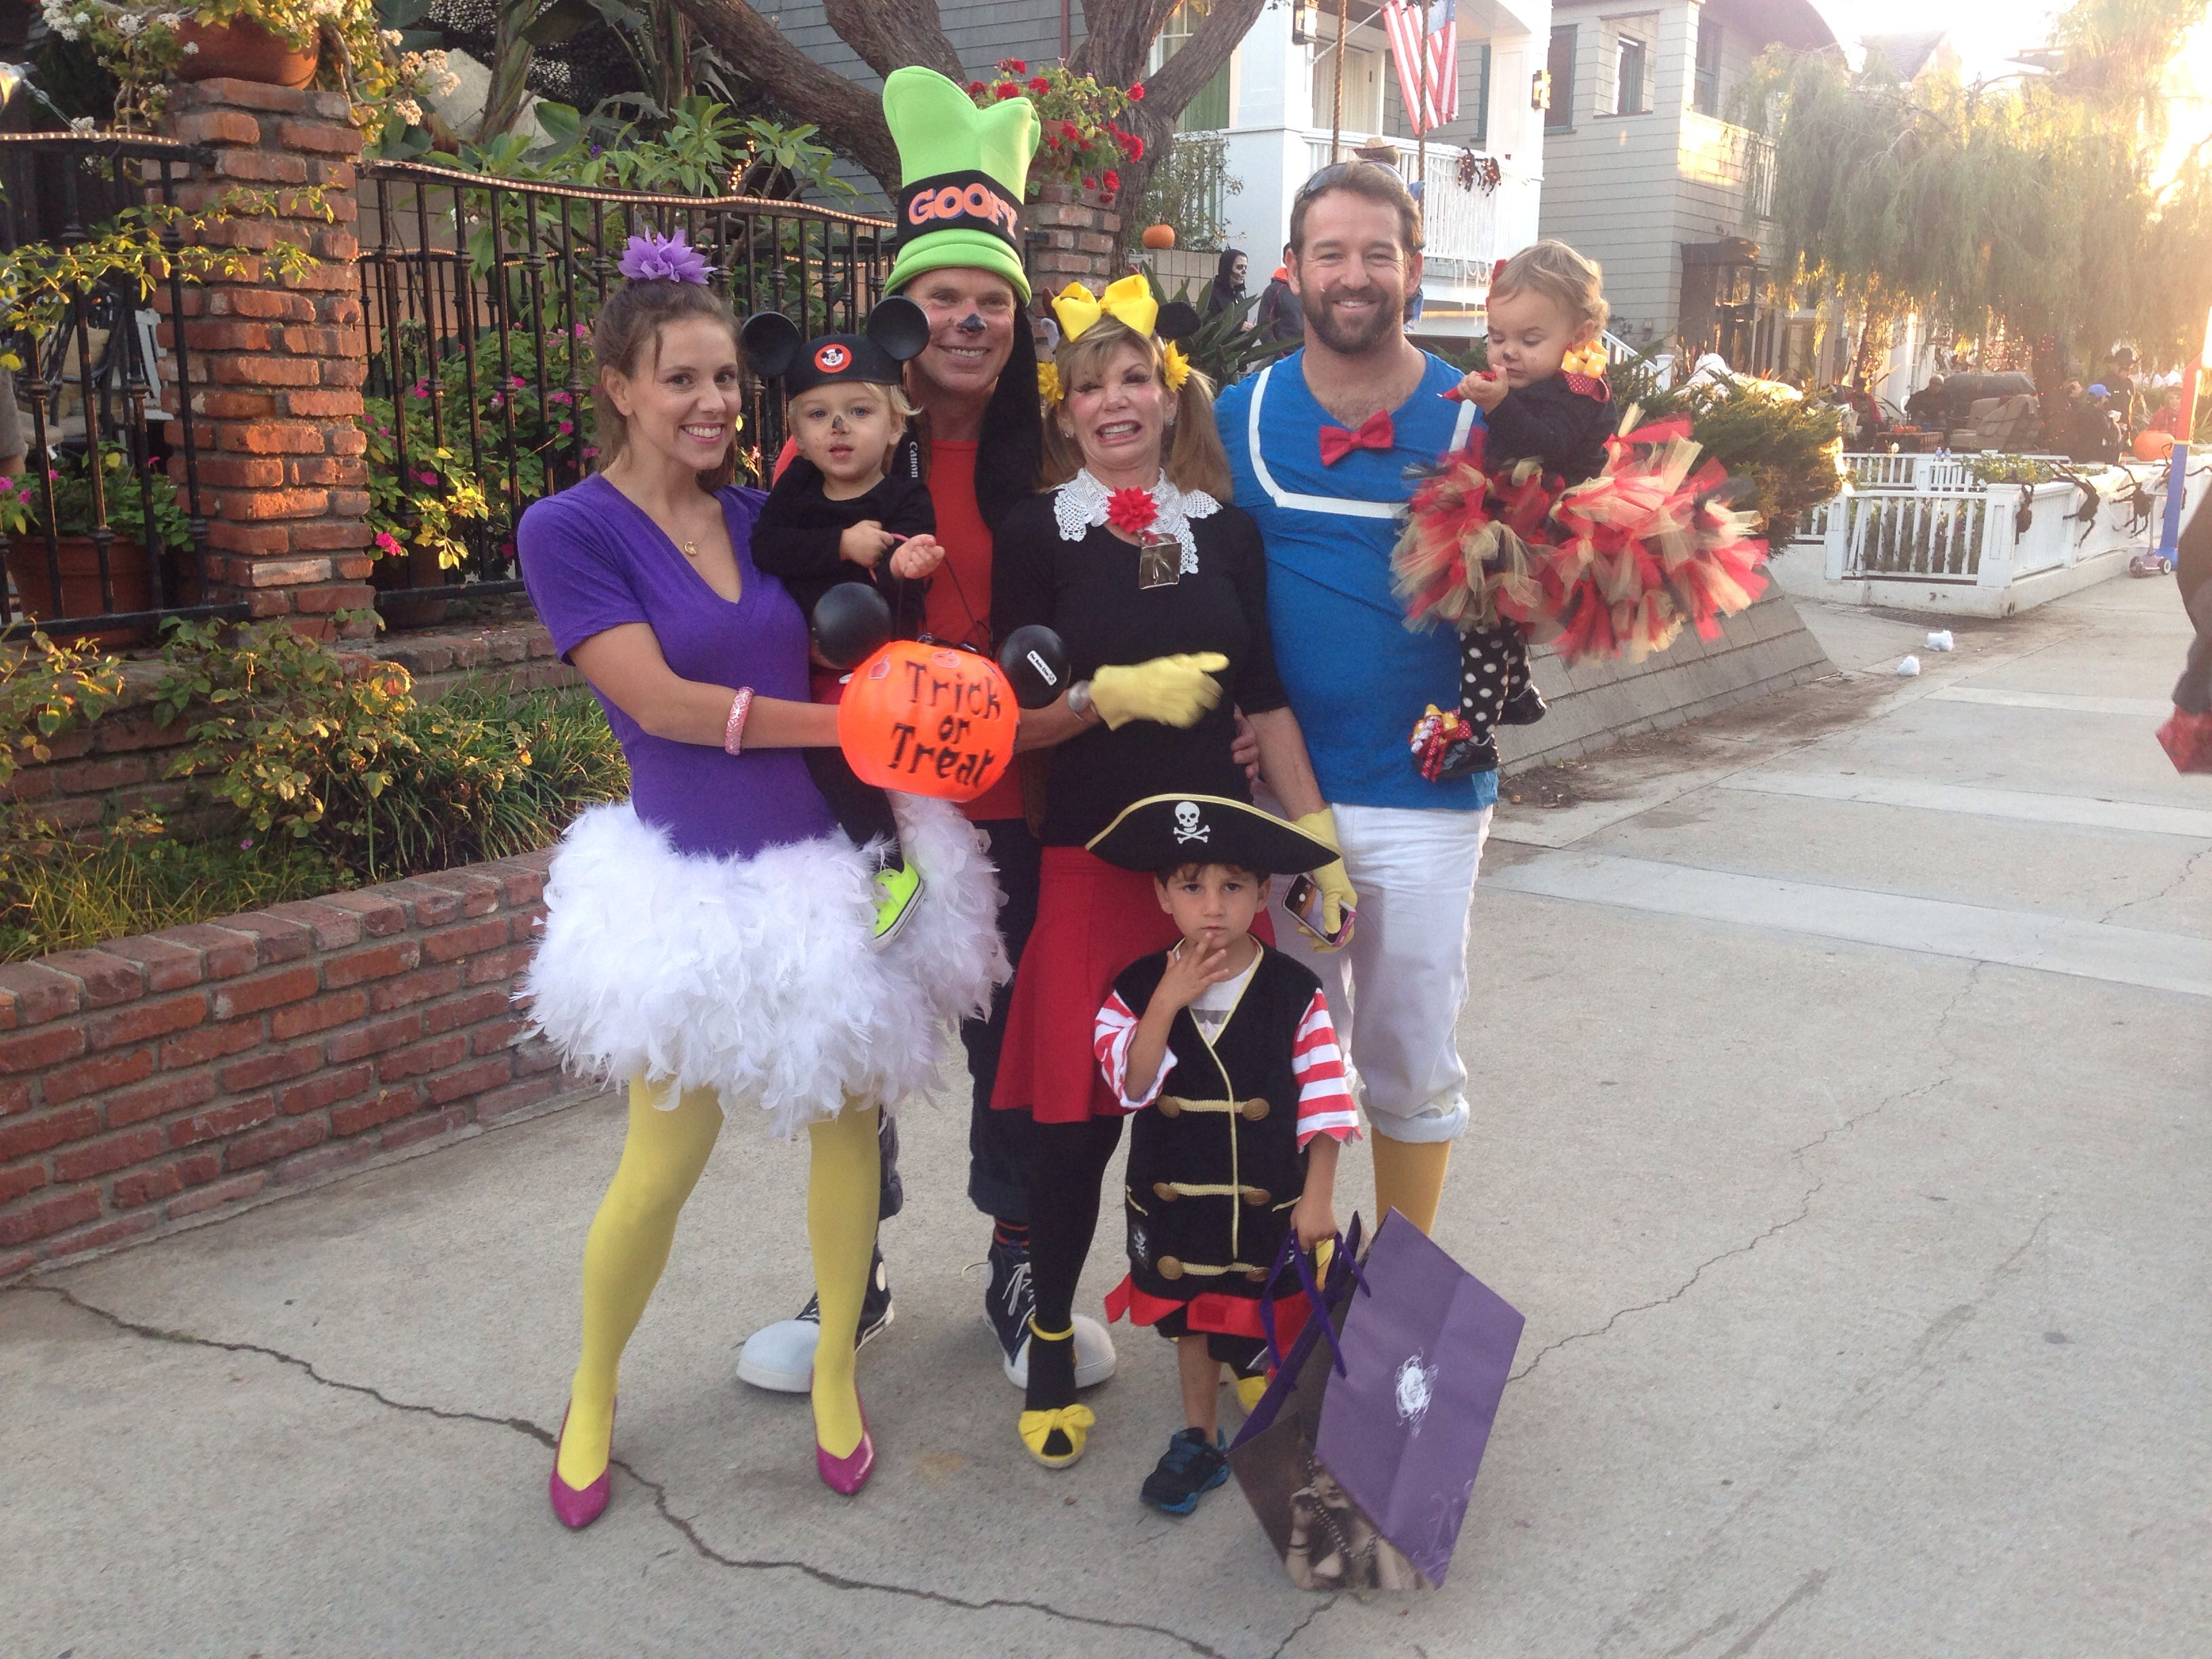 65 best family costumes images on Pinterest